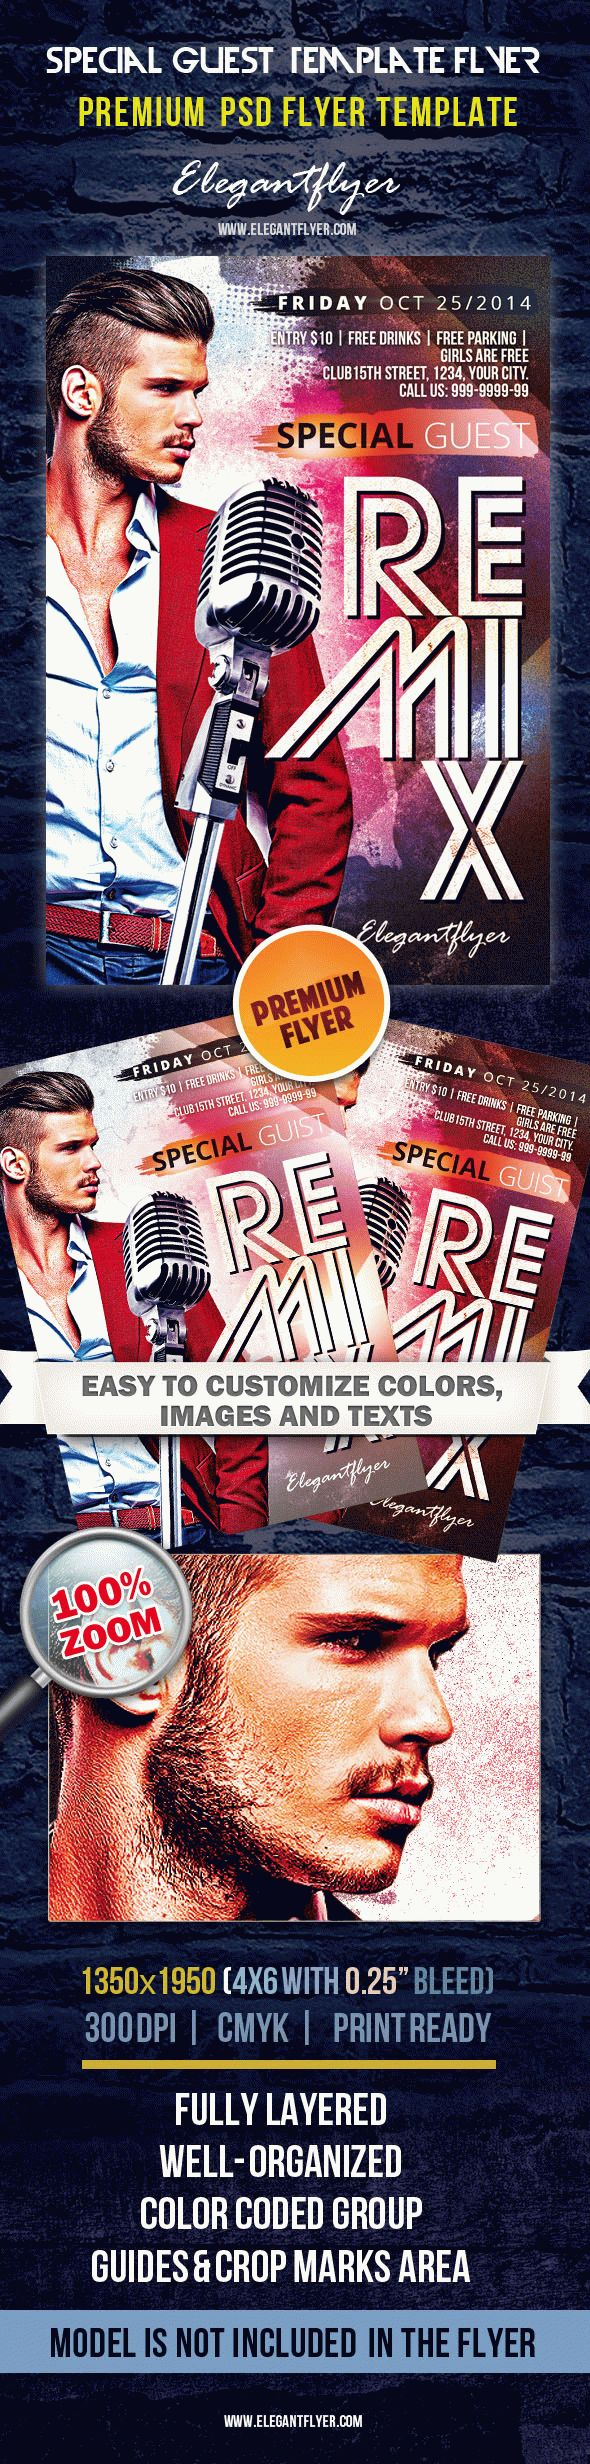 Special Guest 'Remix' – Premium Club flyer PSD Template